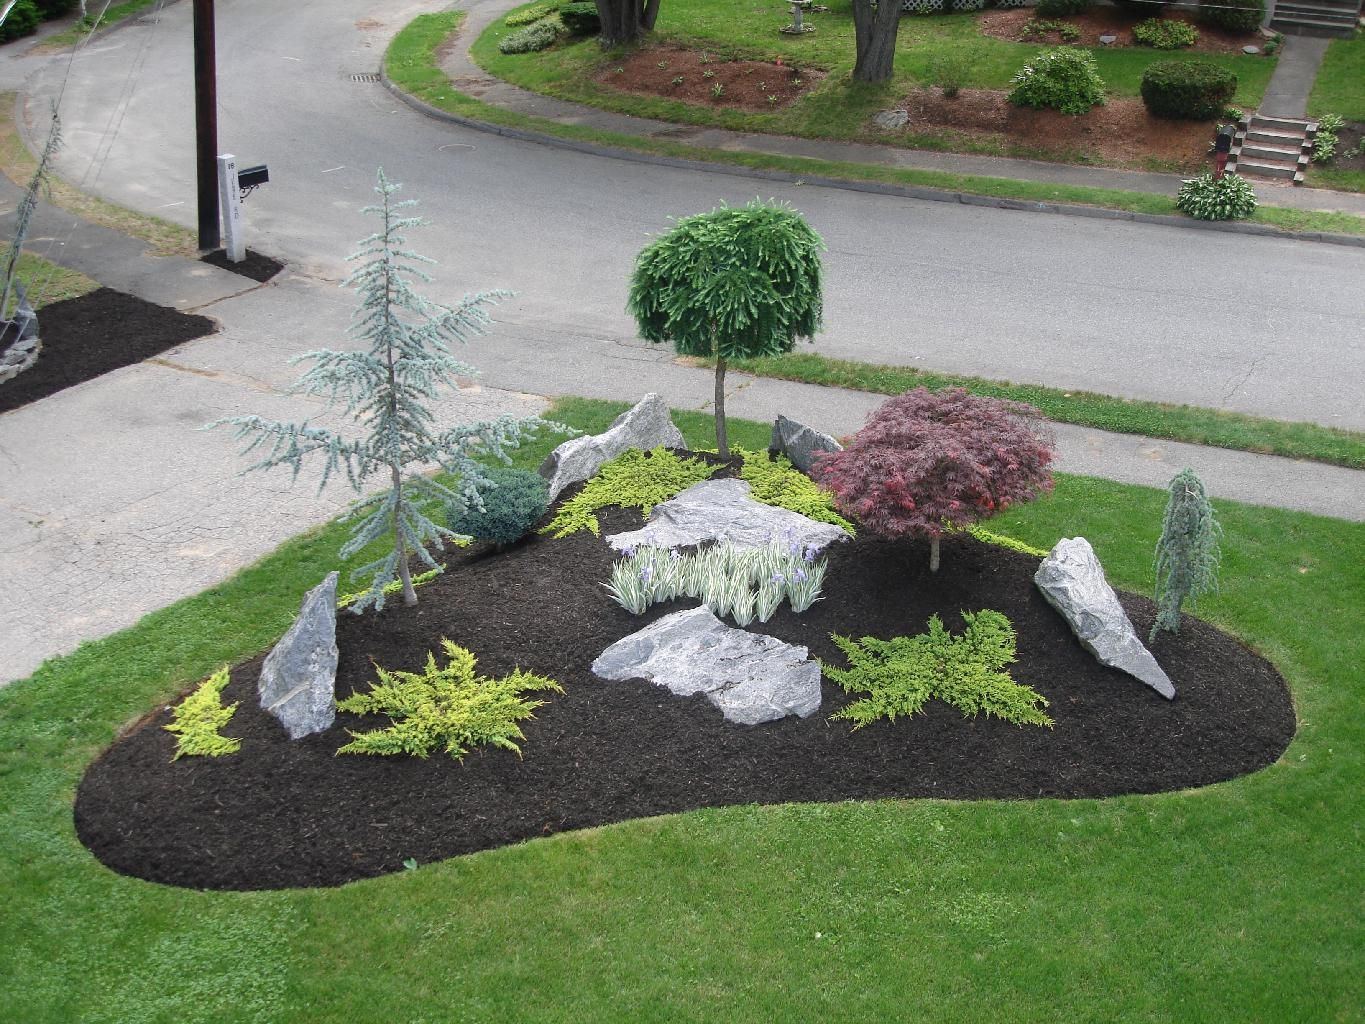 Simple landscape designs with rock beds google search for Rock landscaping ideas